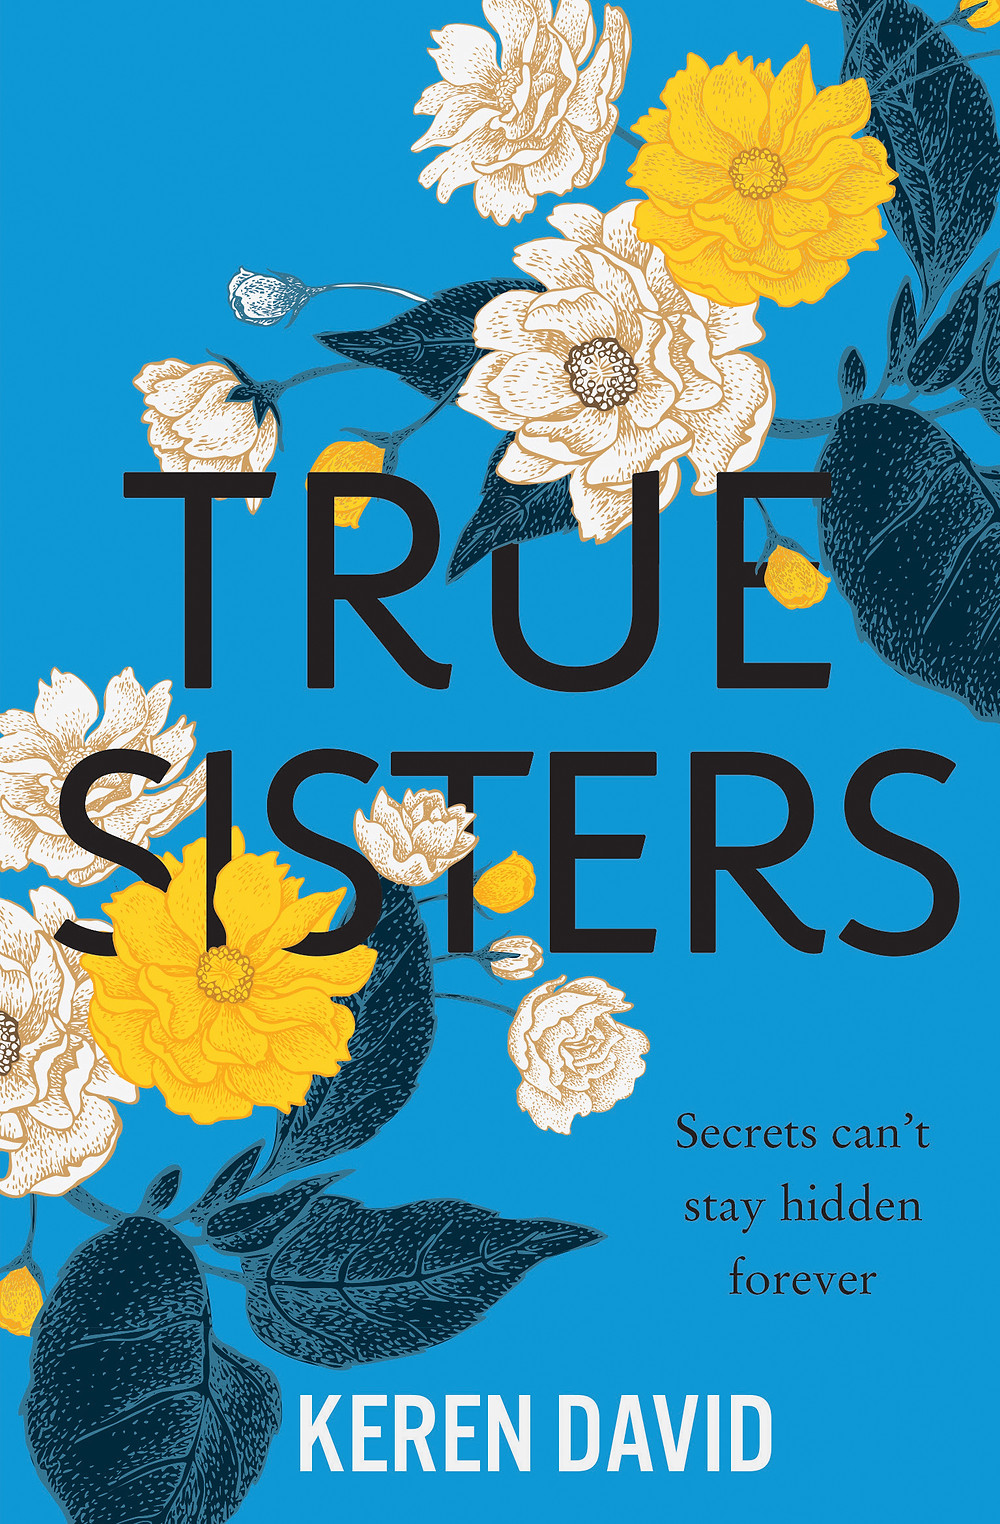 True Sisters, a book for dyslexic teens about friendship and family relationships